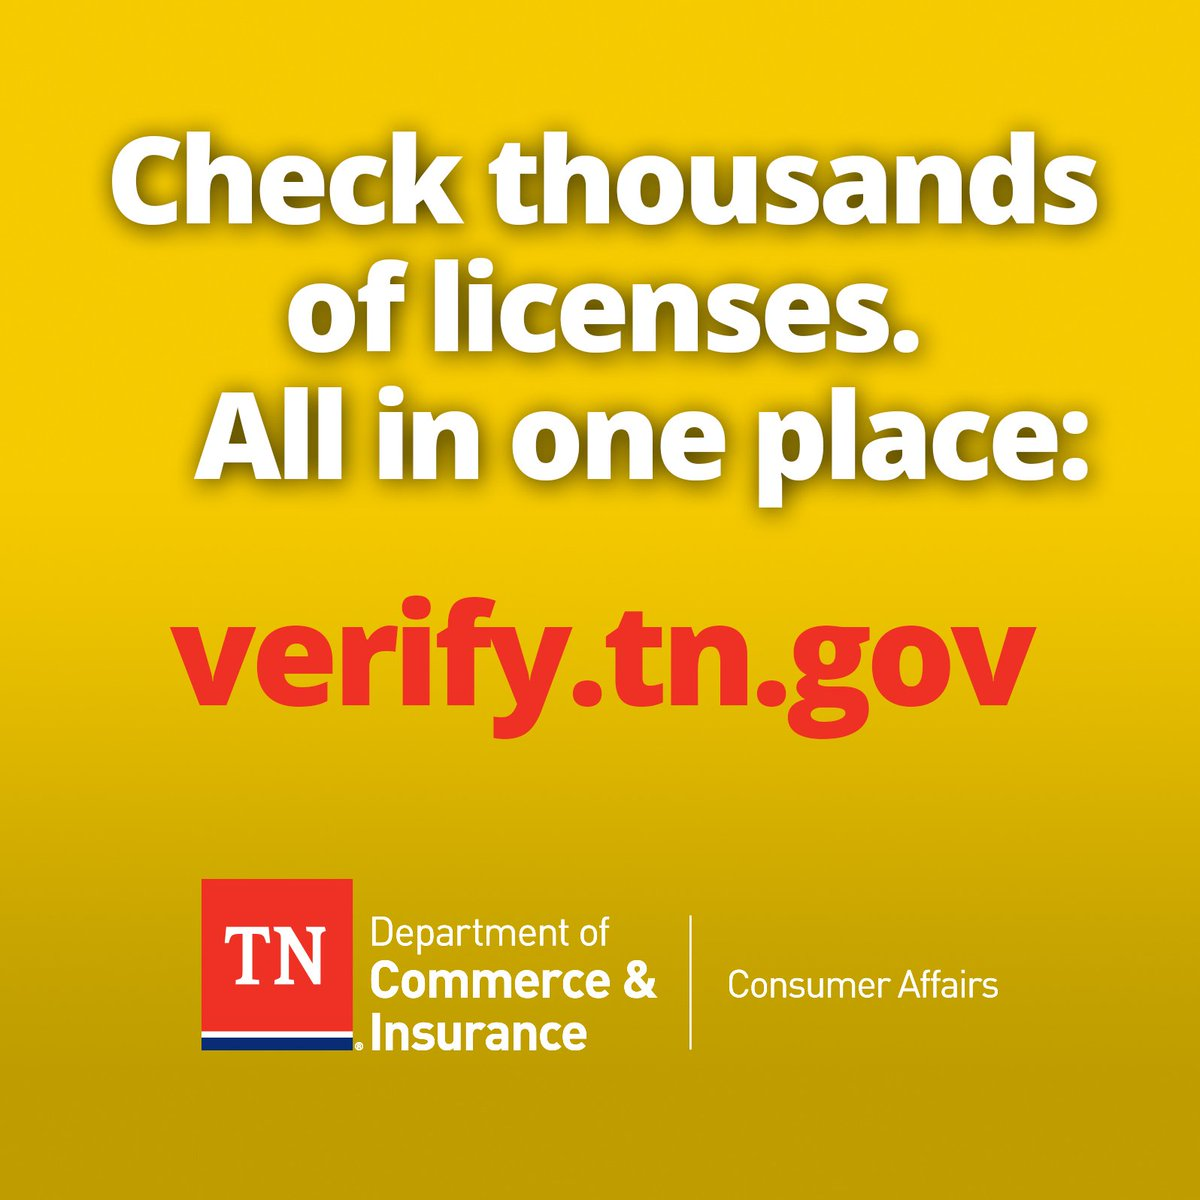 Tennessee Department Of Commerce Insurance On Twitter Real Estate Cosmetology Home Improvement Motor Vehicles And More Https T Co Nxsu2jcb2h Tennessee Verifytn Https T Co Udhawynojx